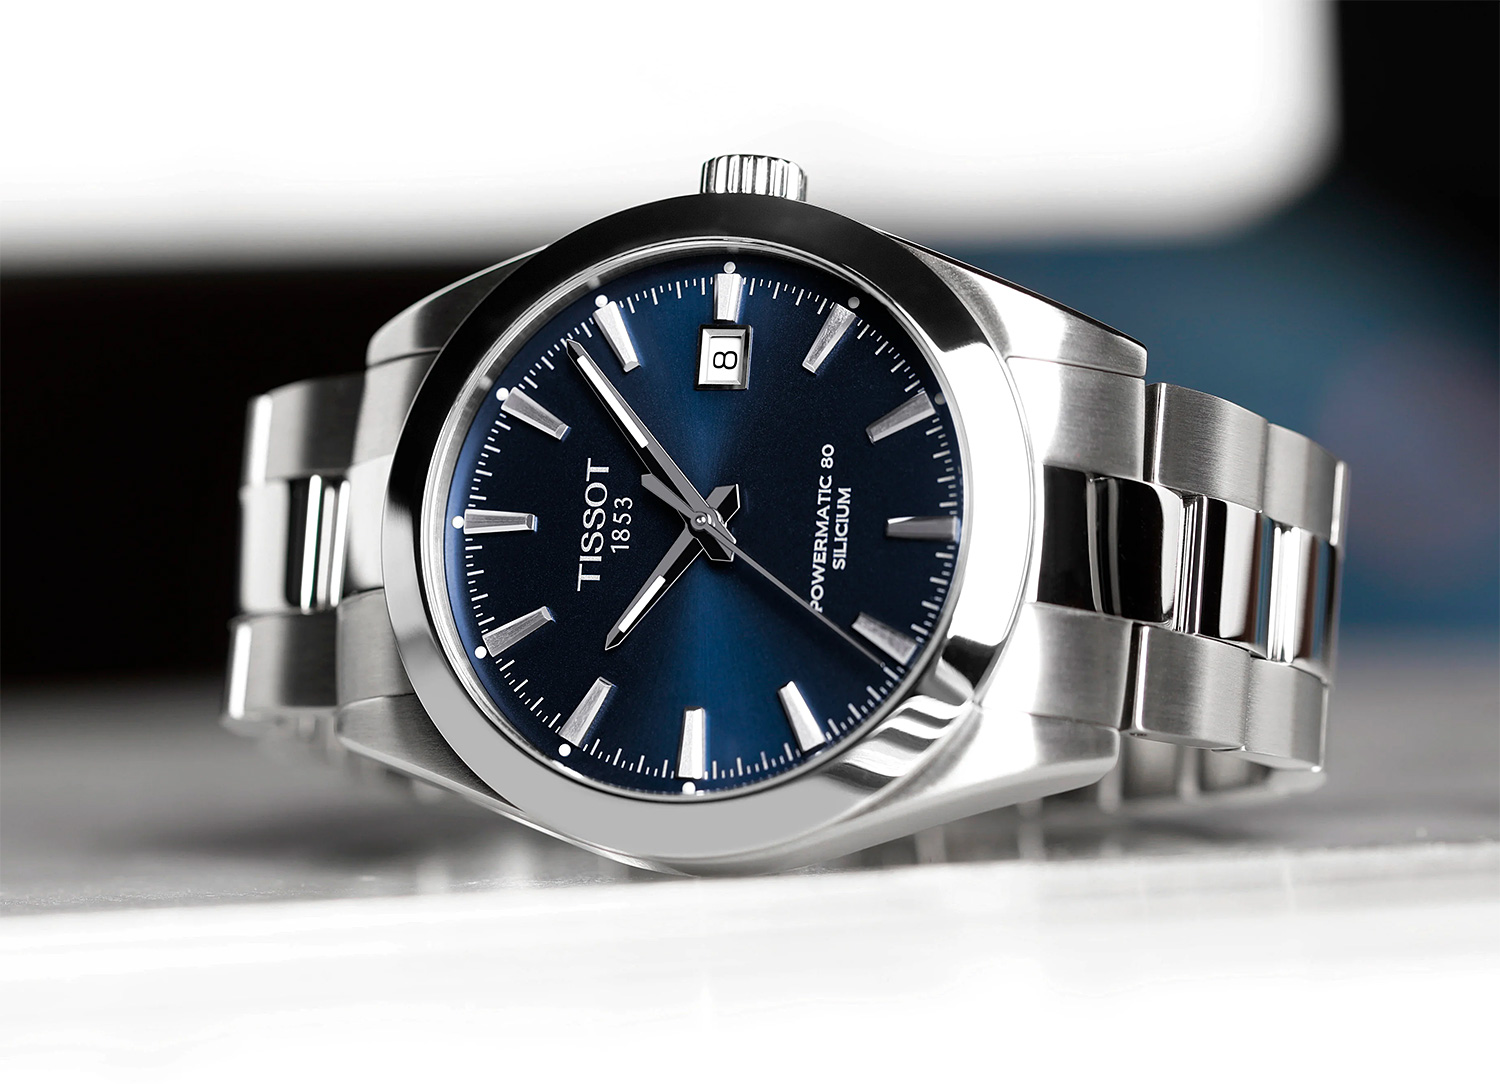 Tissot Introduces a Gentleman with Impeccable Taste at werd.com